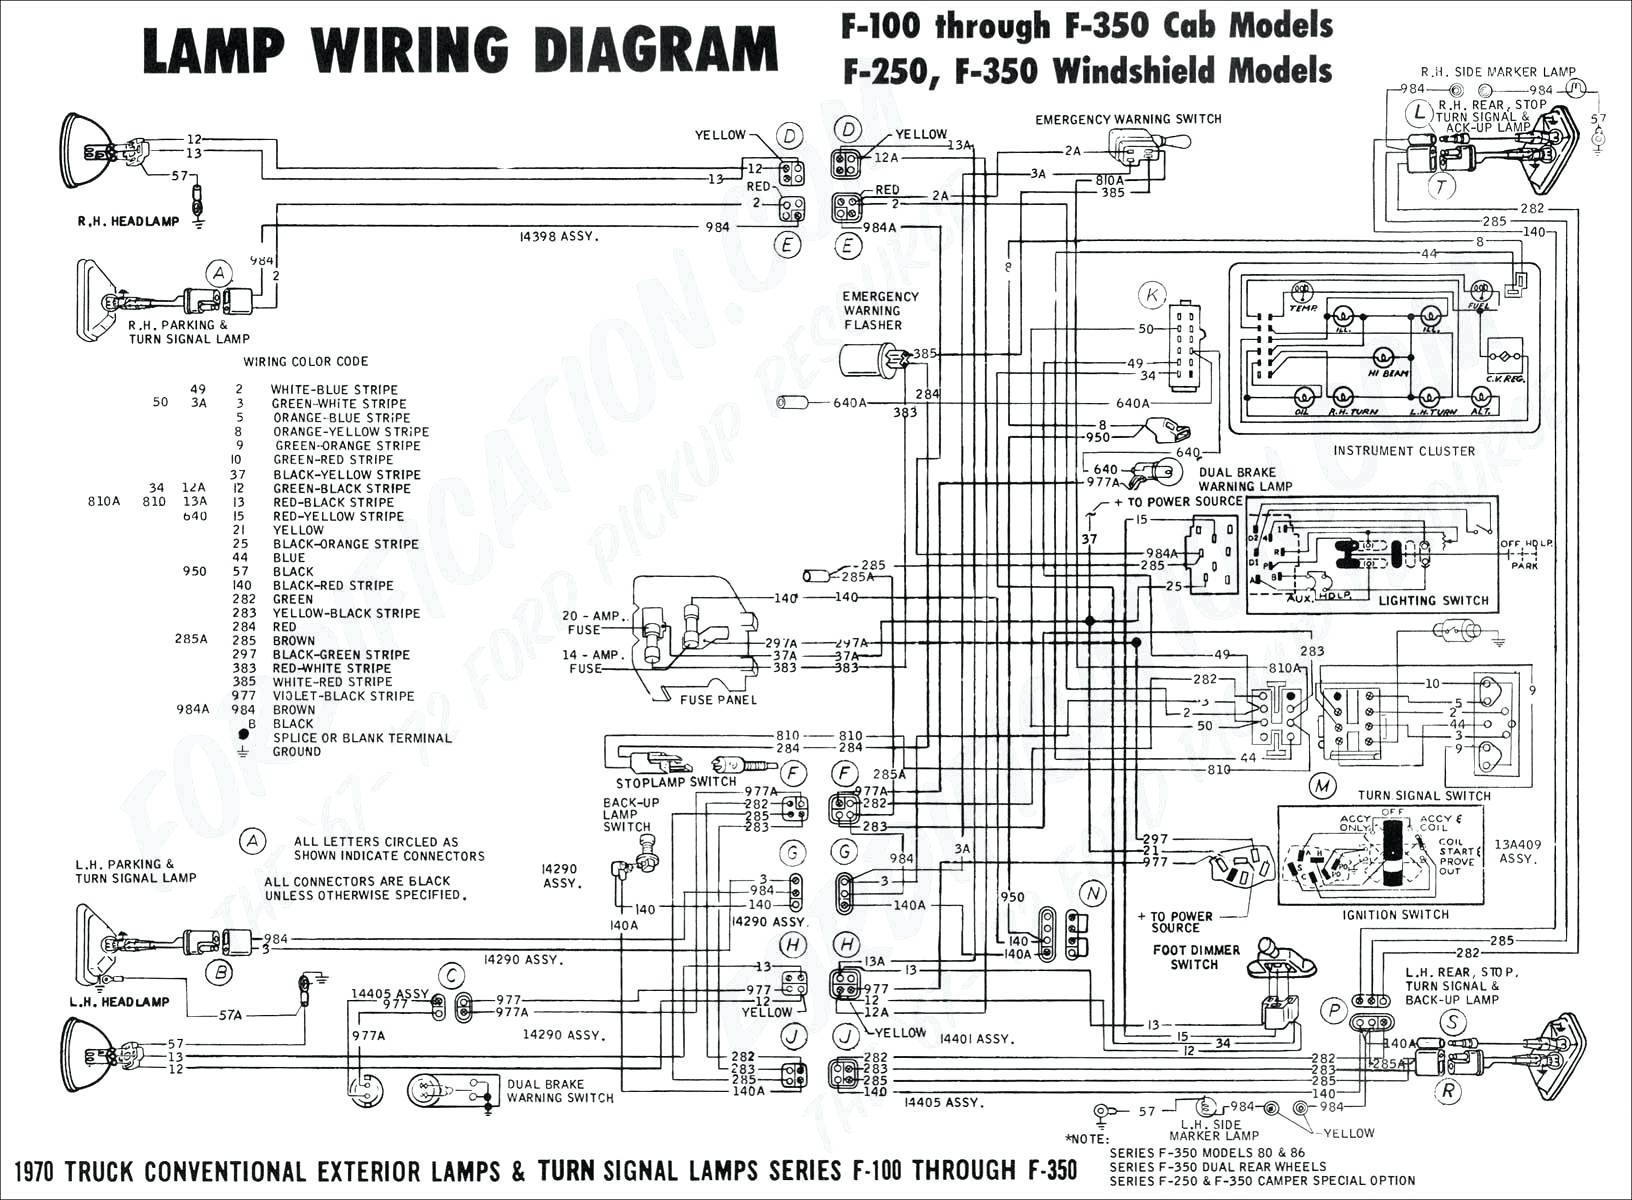 Toyota Celica Engine Diagram toyota Corolla Parts Diagram Fuse Box Wiring Diagram for You Of Toyota Celica Engine Diagram